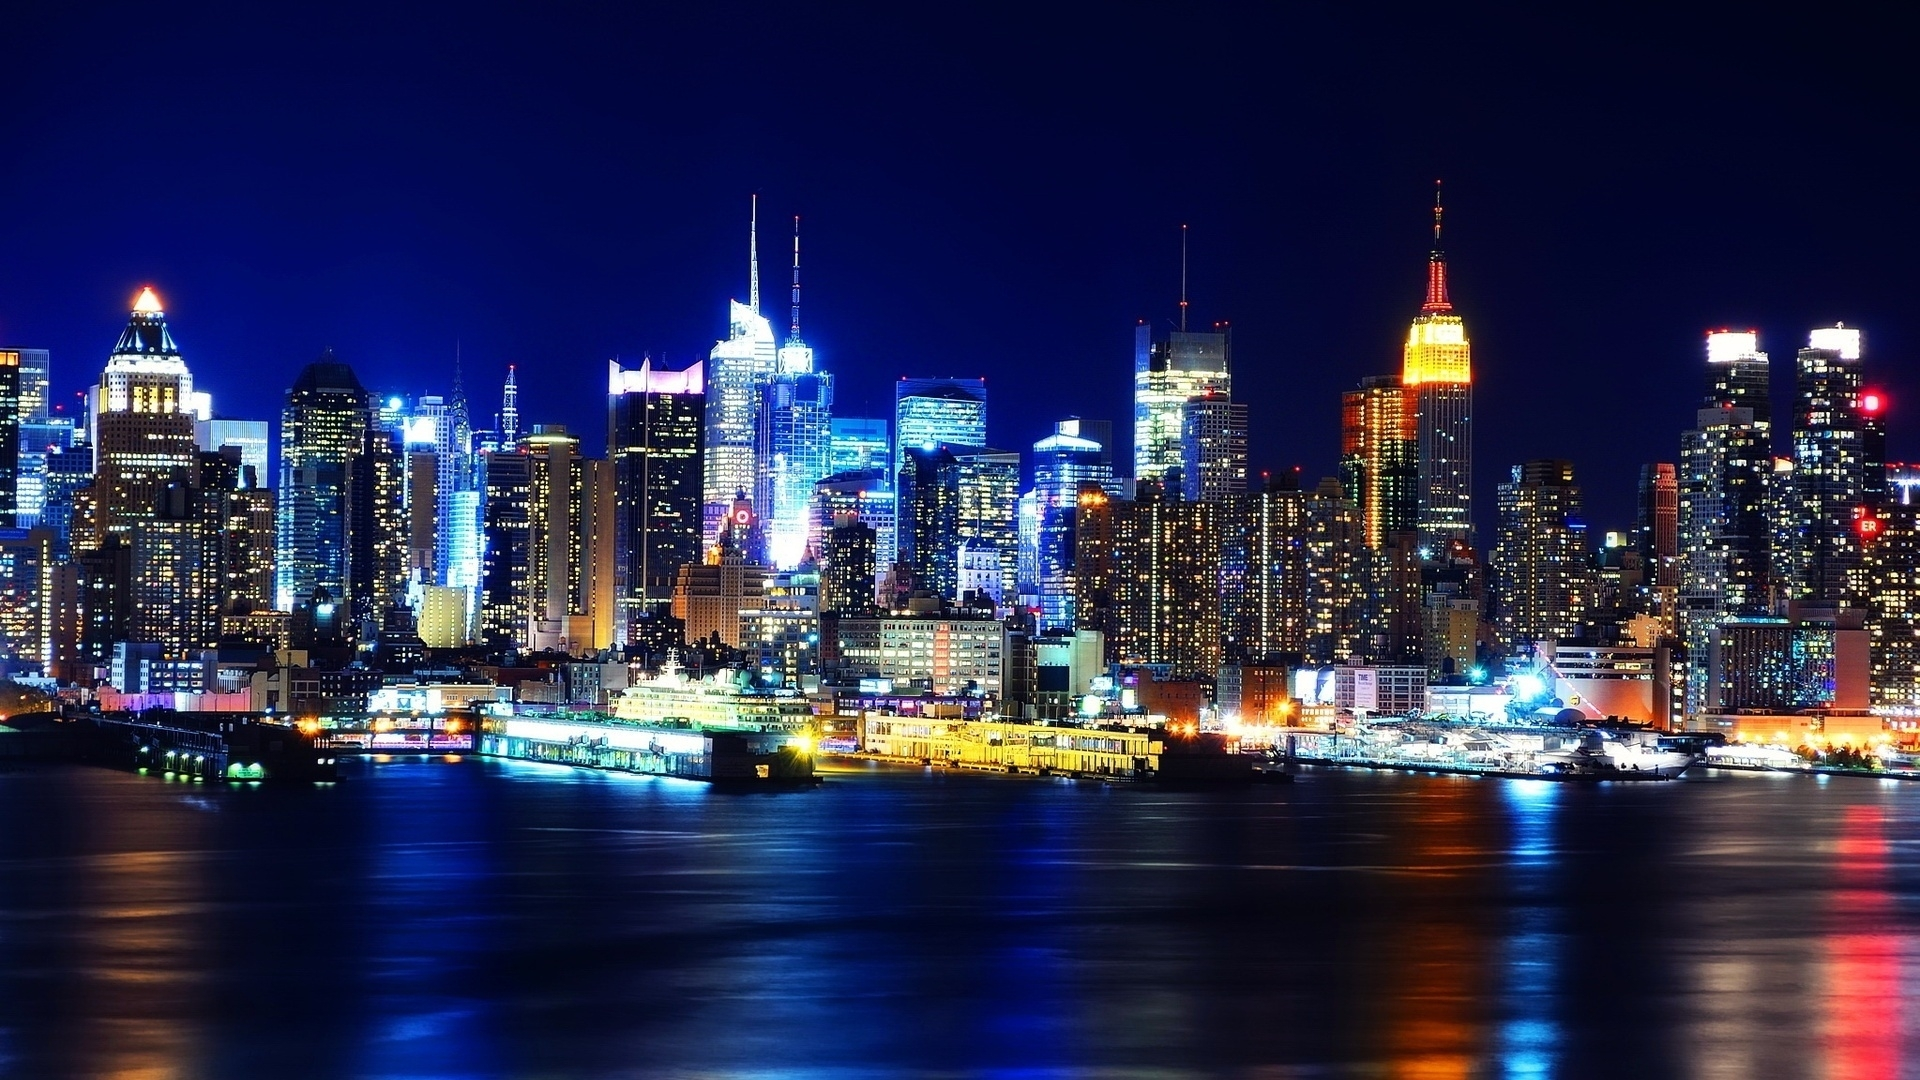 10 Latest New York Night Wallpaper Hd FULL HD 1920×1080 For PC Background